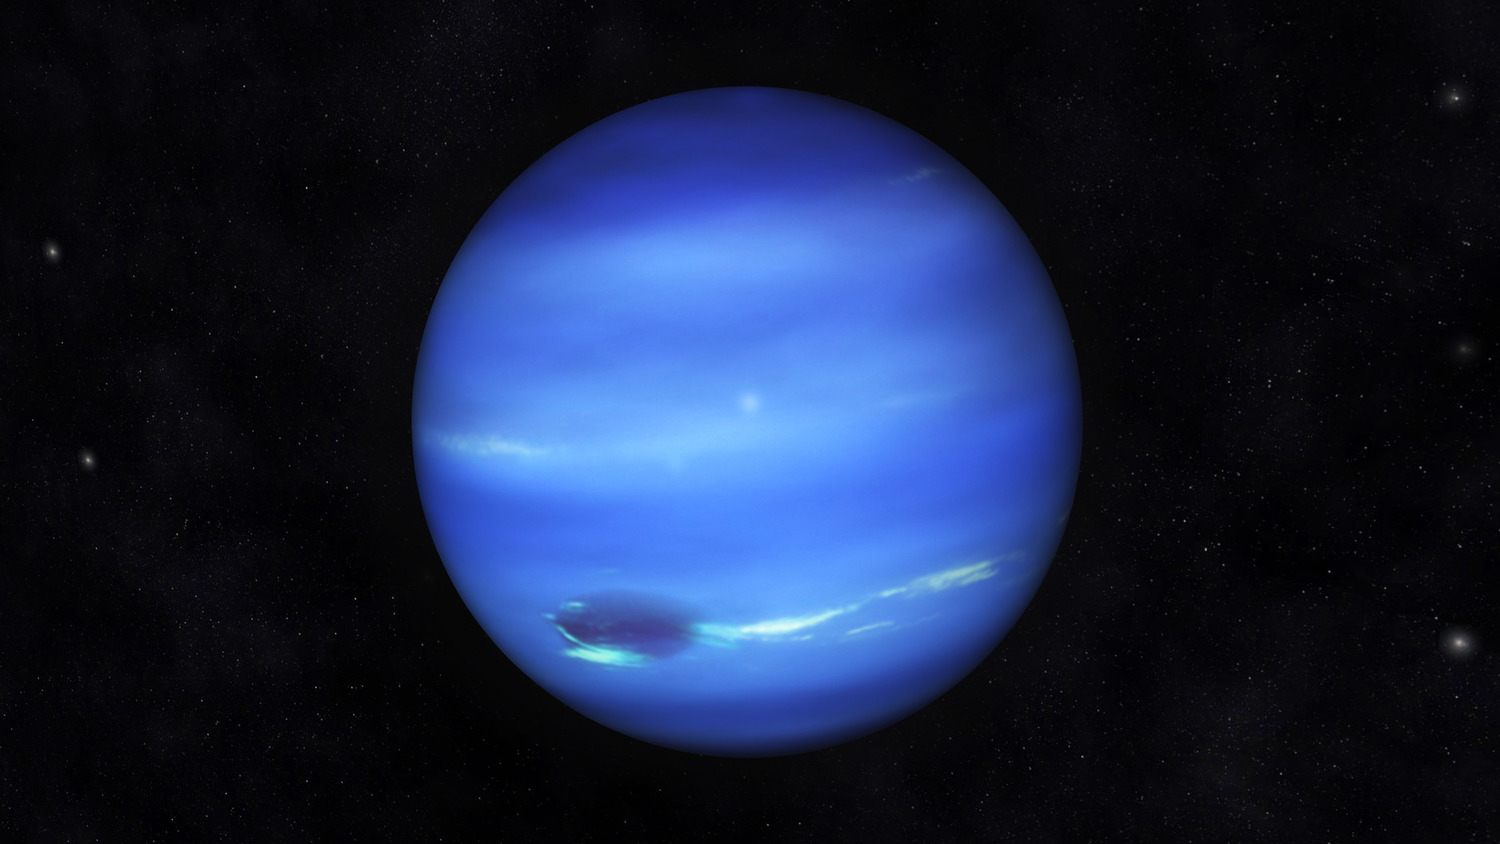 Neptune High Definition Wallpaper | Dreamicus Dream Book